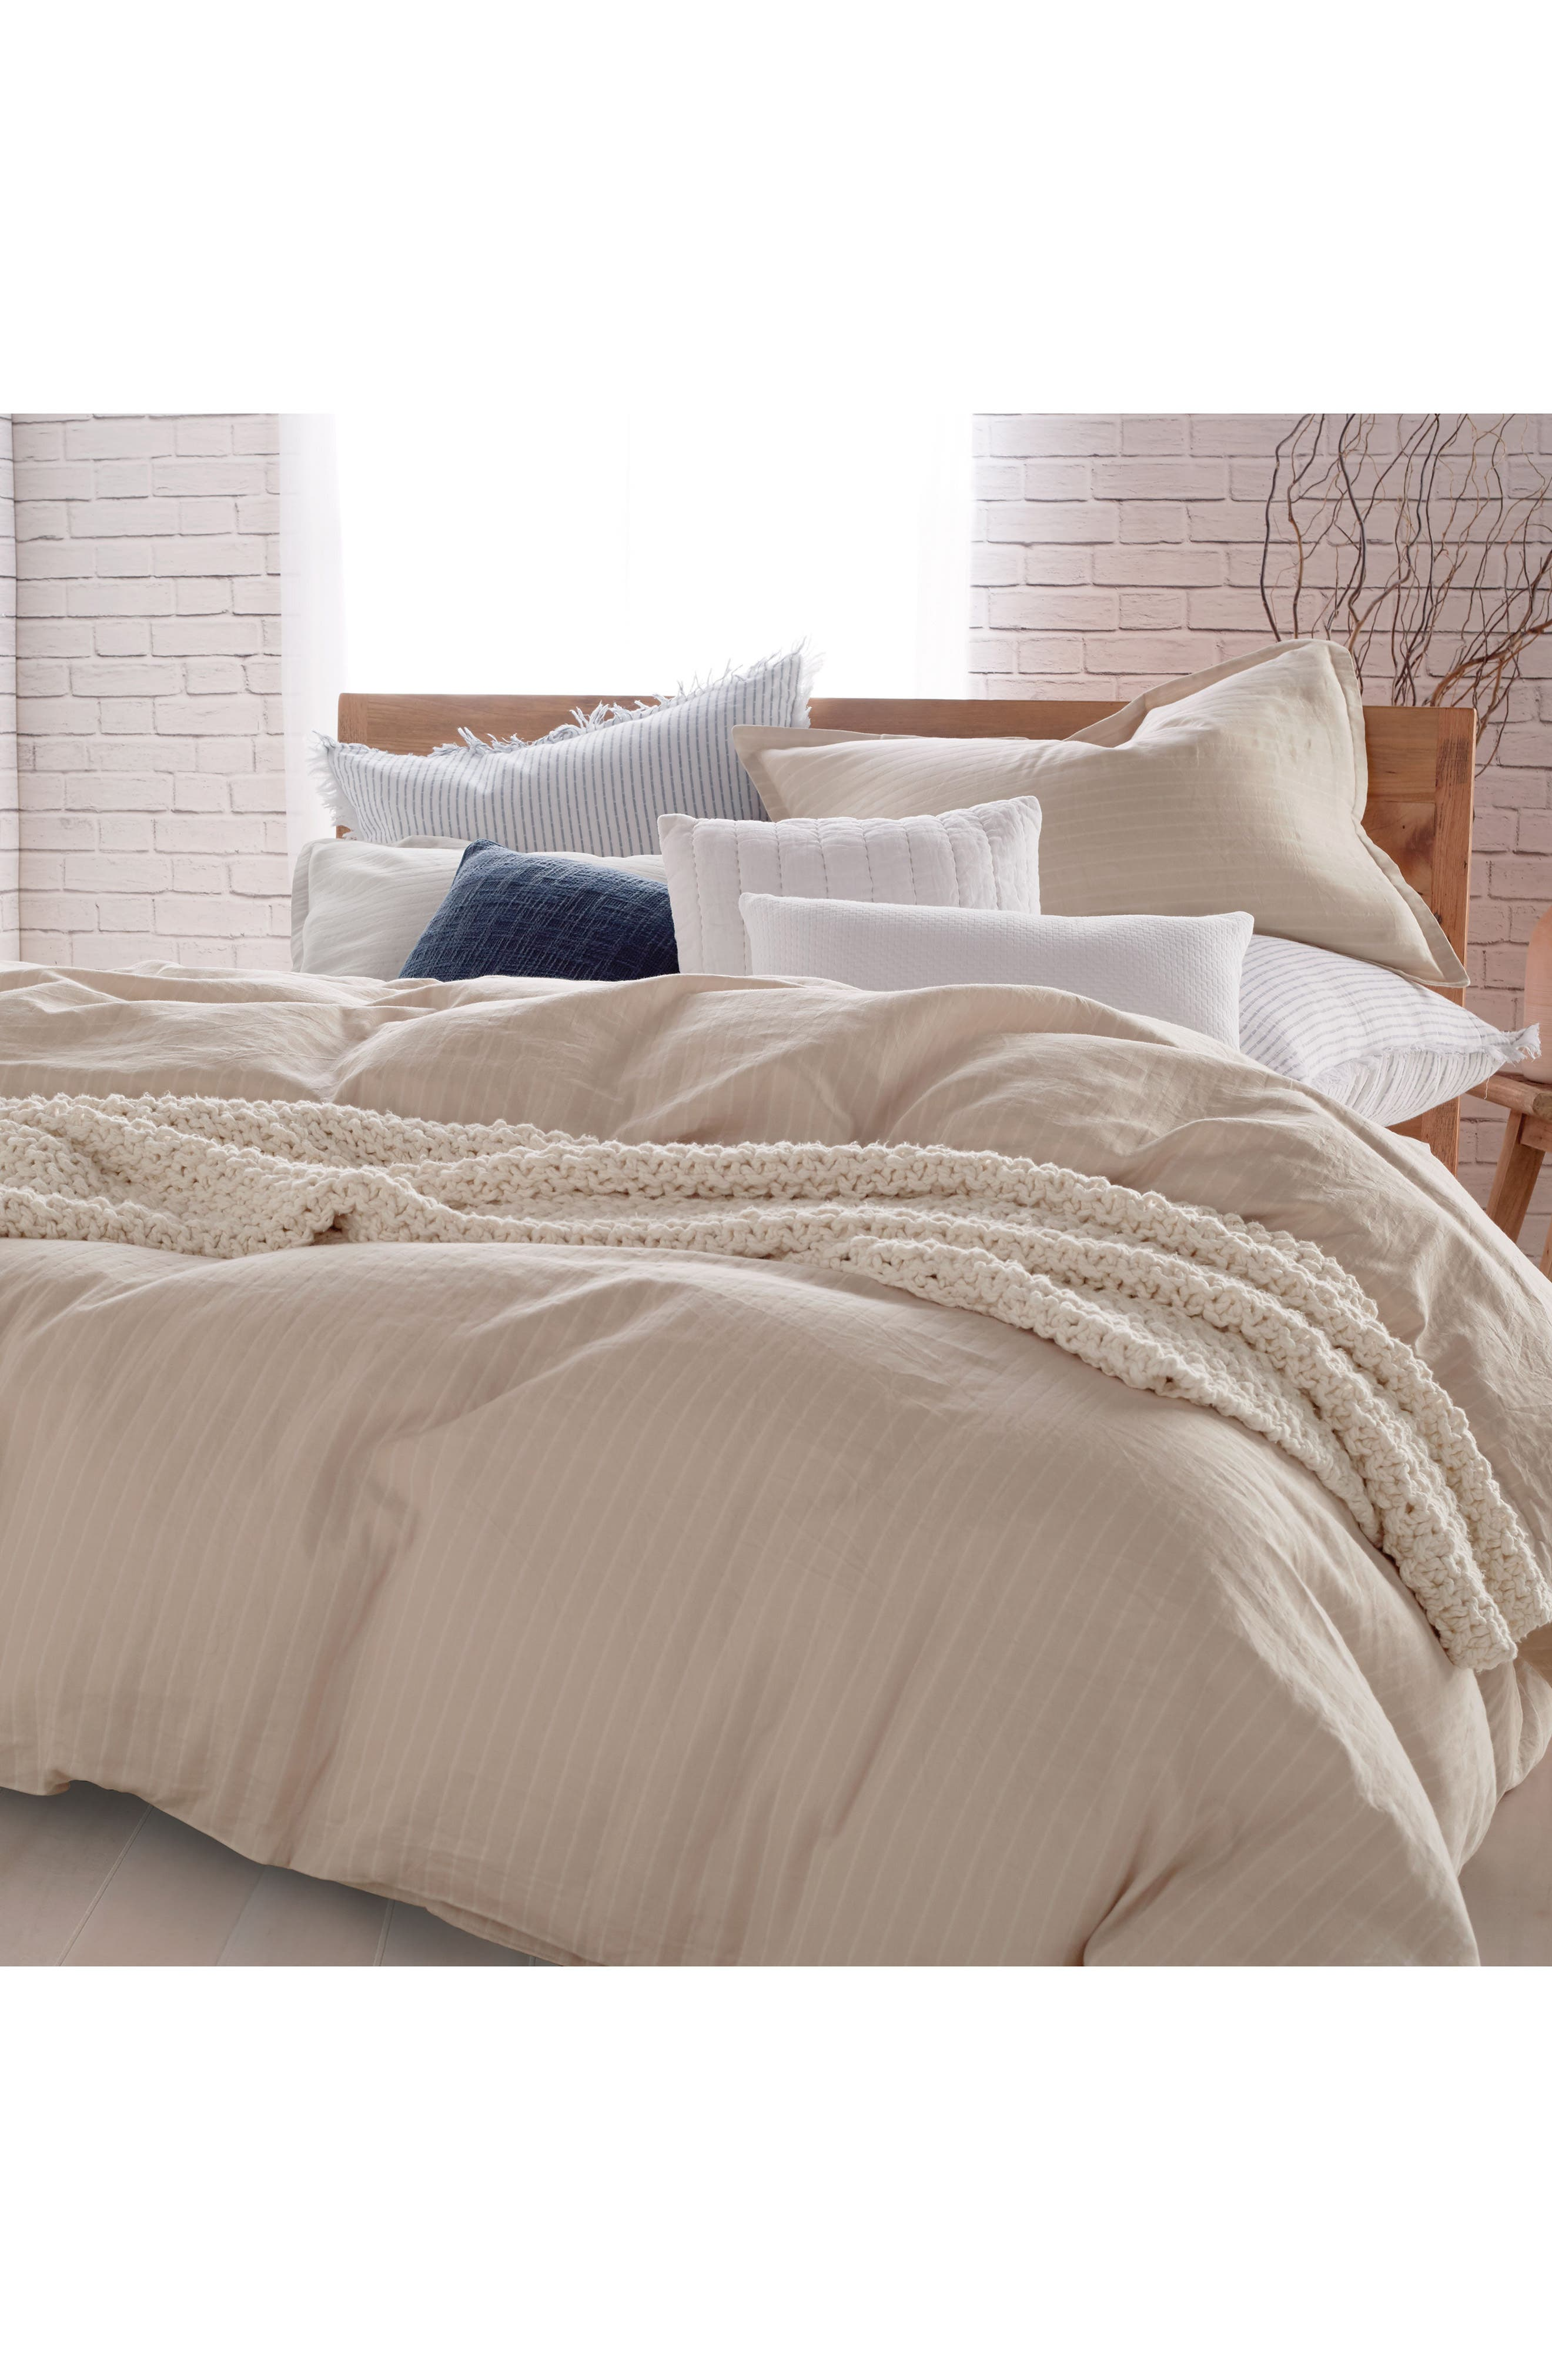 Main Image - DKNY PURE Comfy Duvet Cover